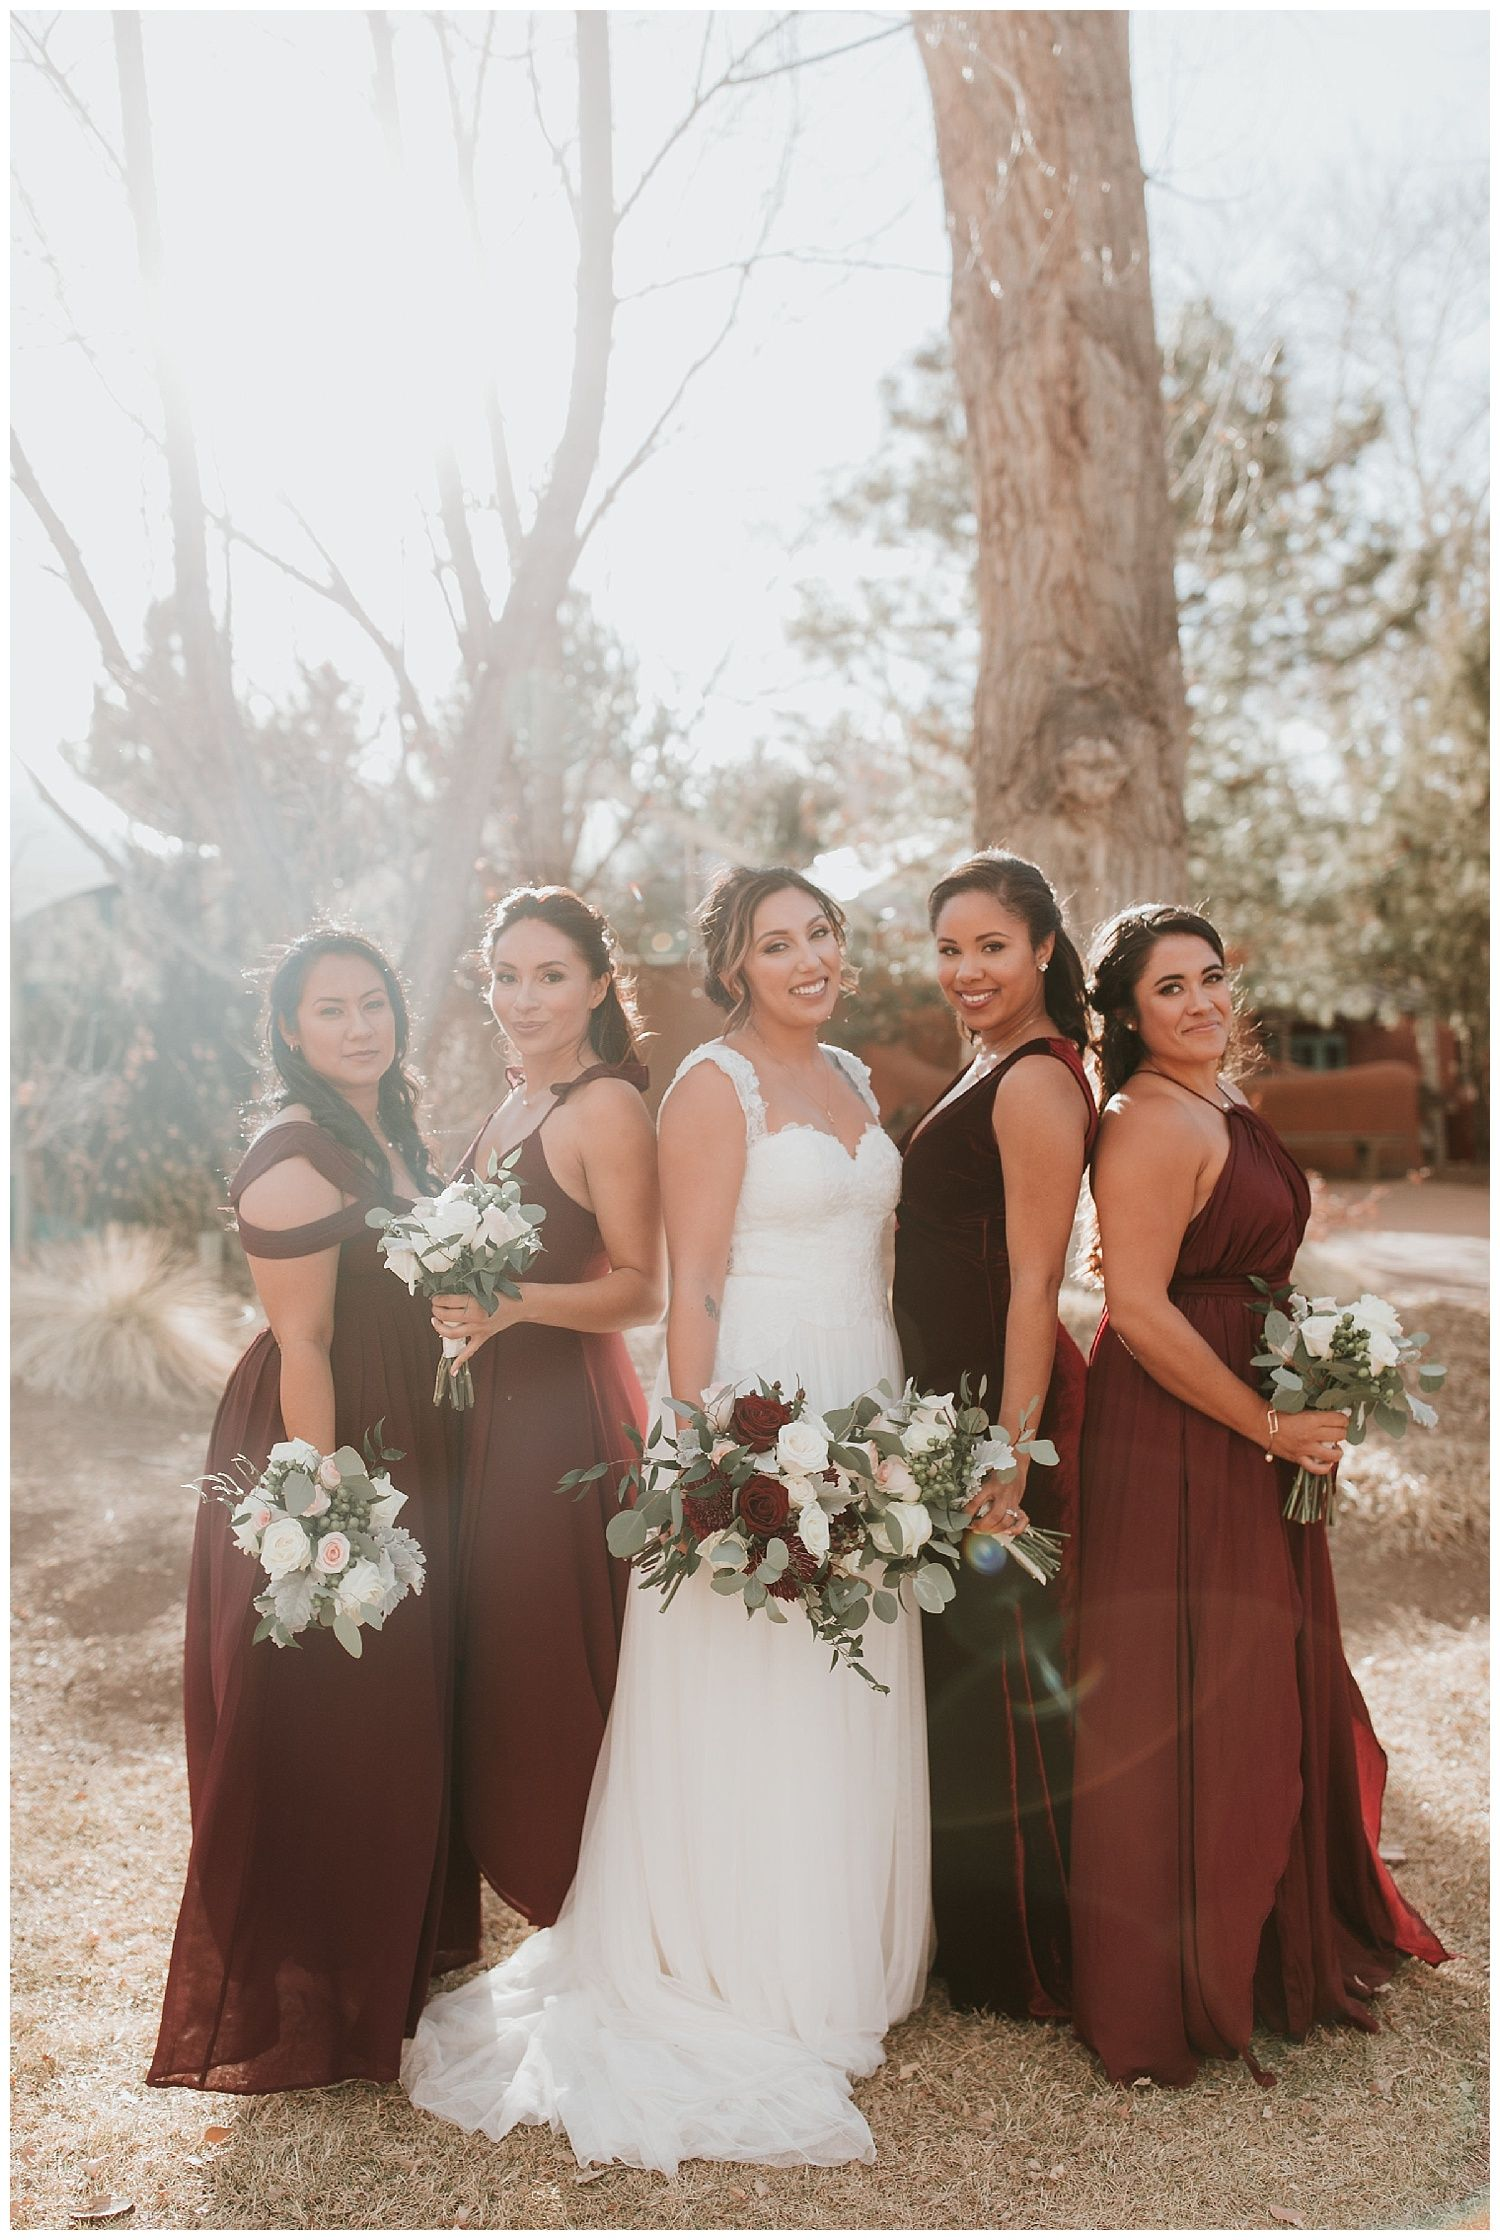 Bridesmaid Style in 2018 | bridesmaid inspo | Pinterest ...